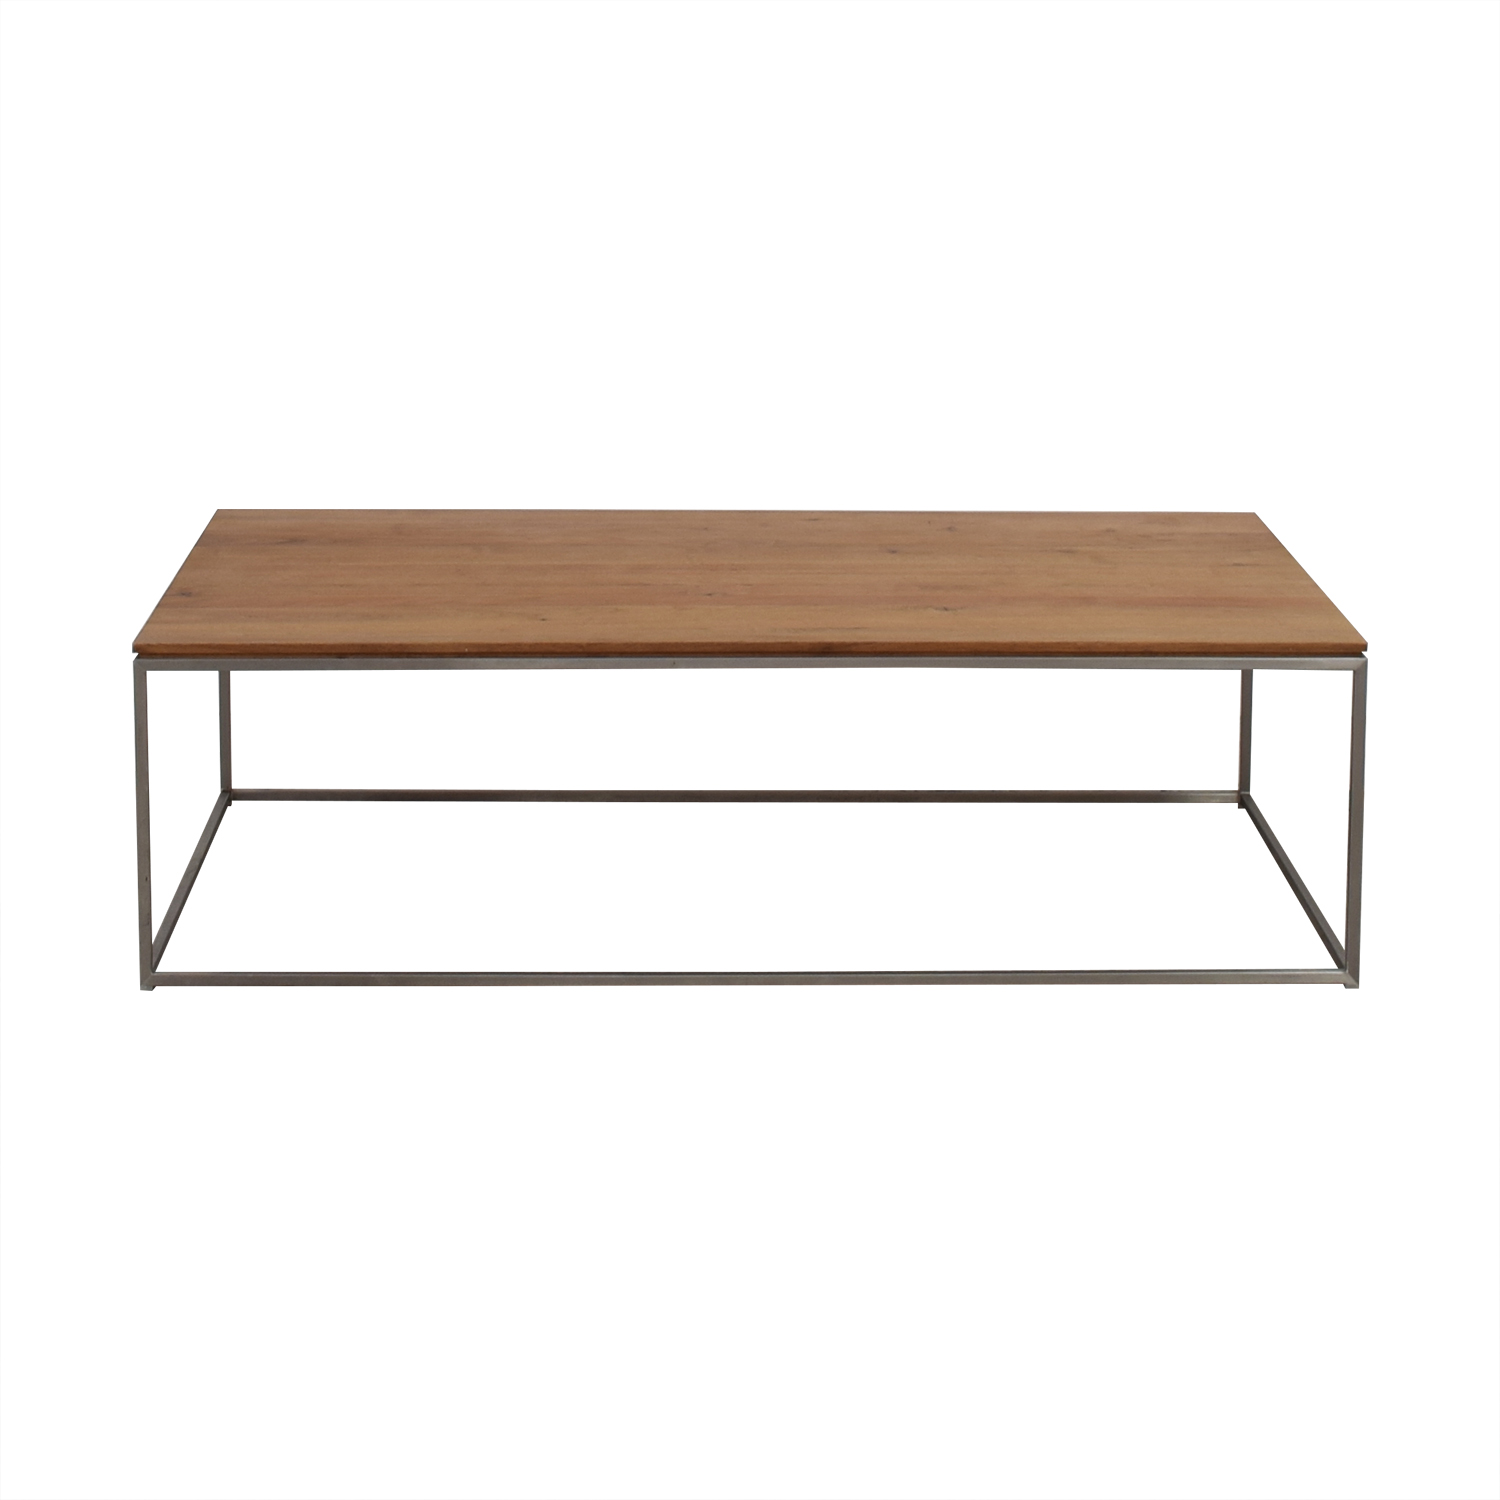 Crate & Barrel Frame Medium Coffee Table / Tables